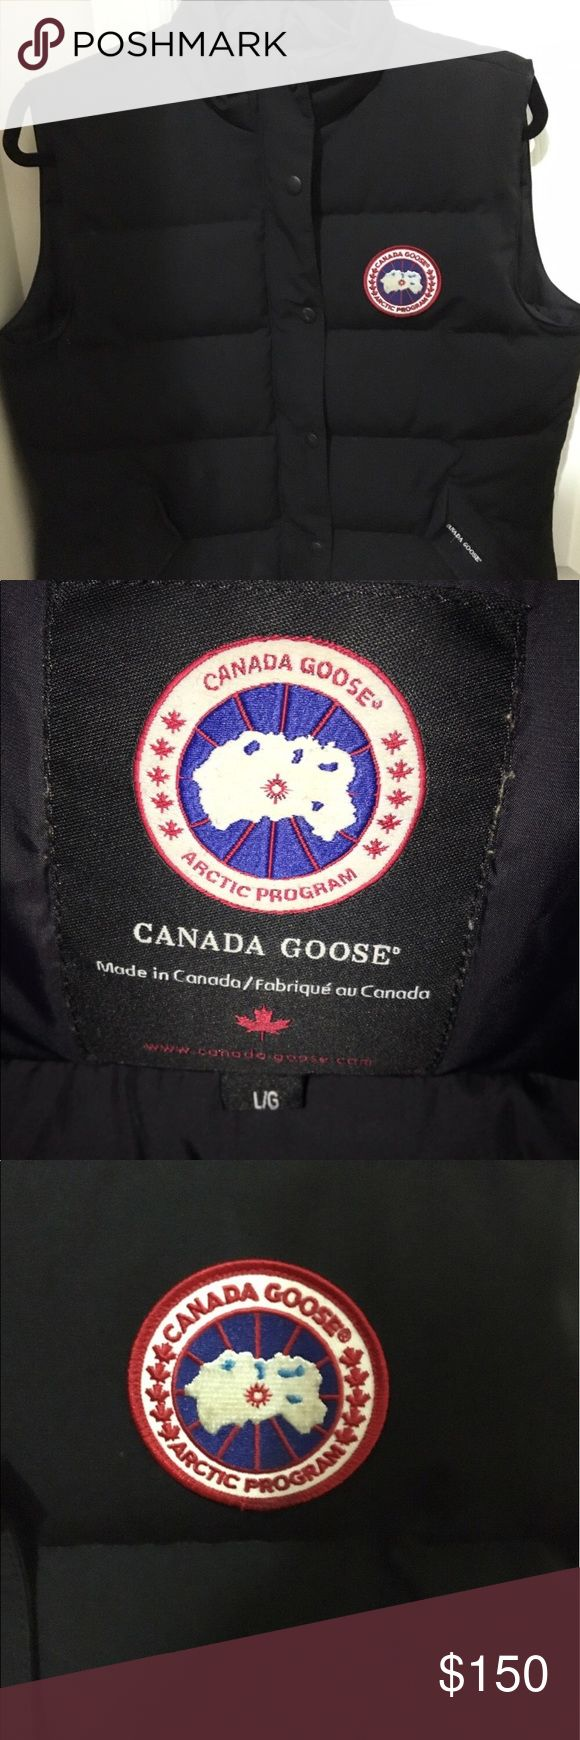 Canada Goose Vest Women's Canada goose Vest worn about four times, This Vest is in perfect condition and it's authentic. Canada Goose Jackets & Coats Vests